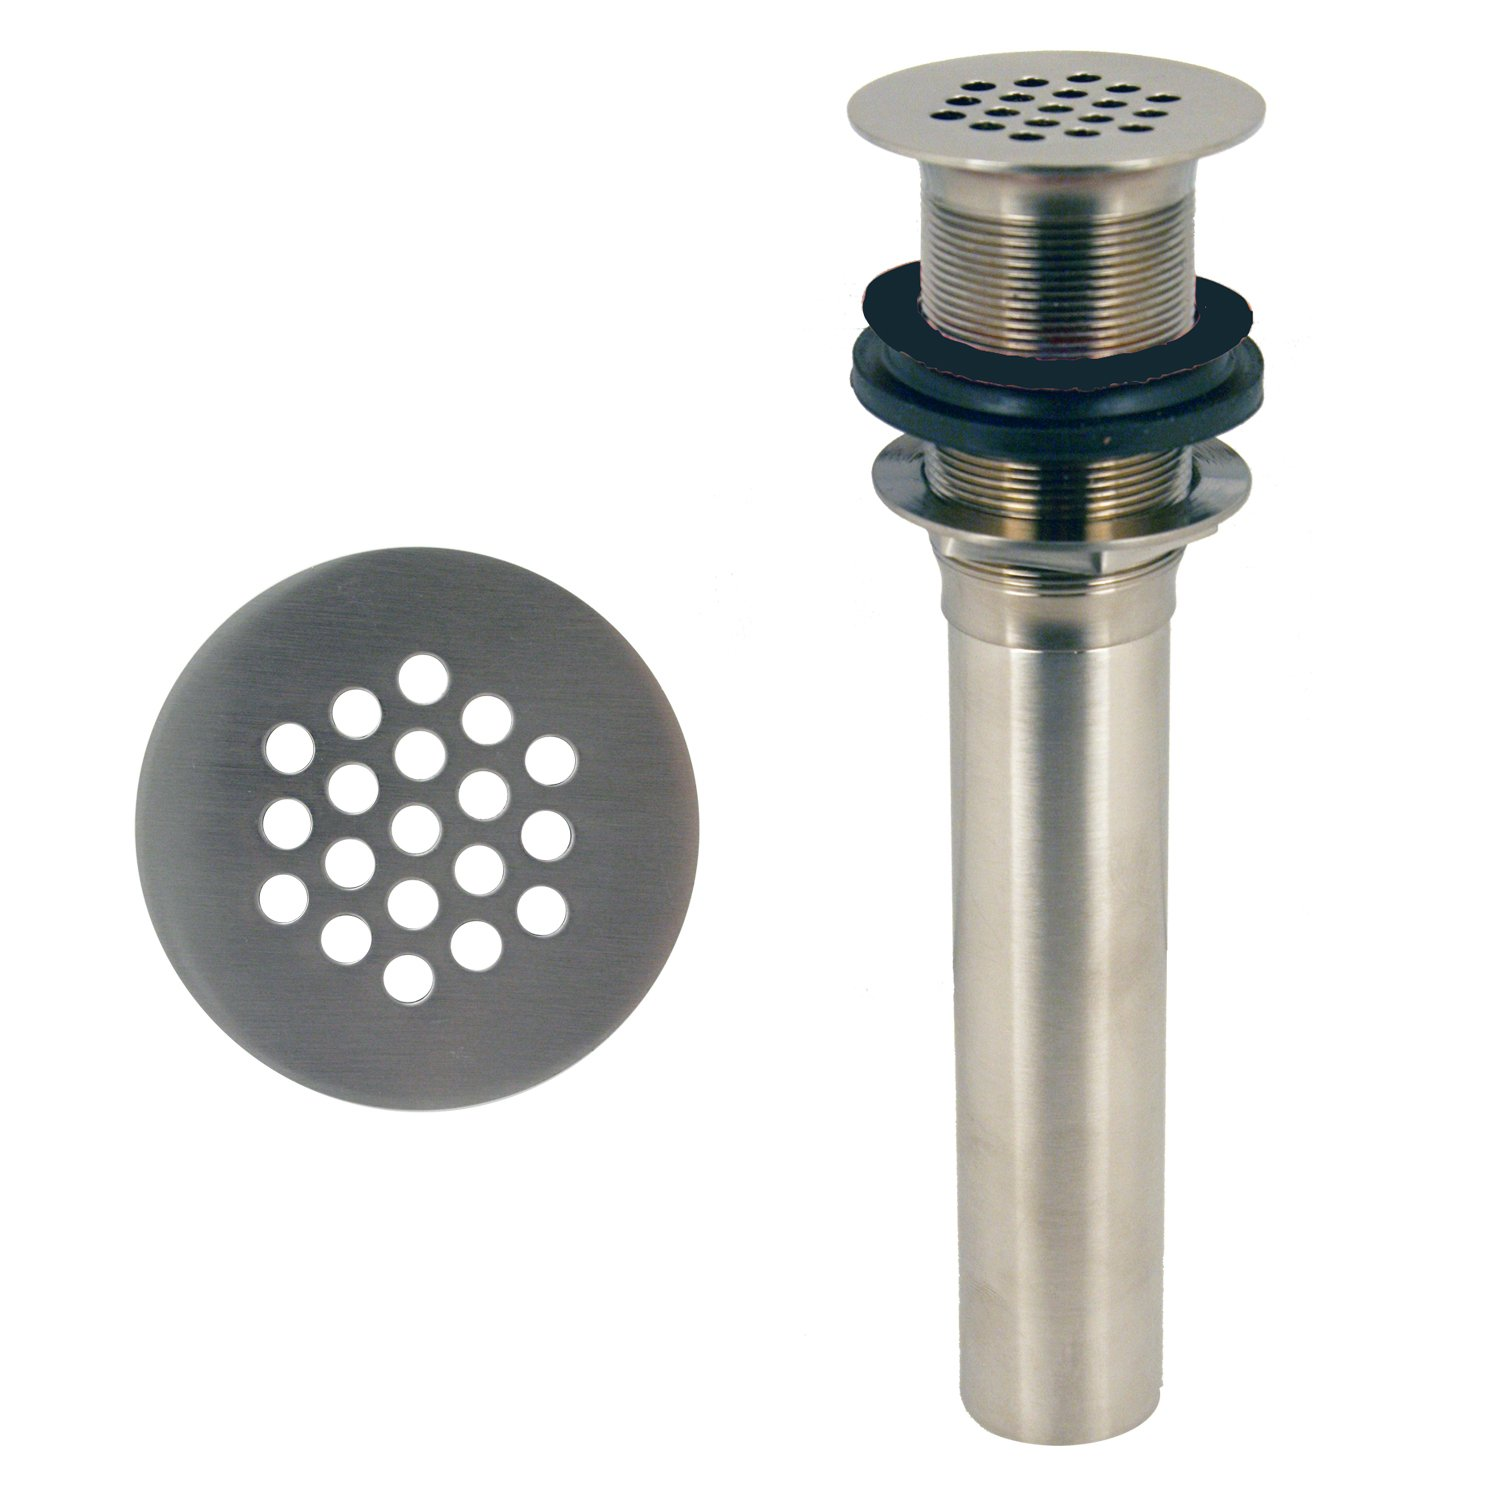 Westbrass D411-12-07 Grid Strainer Lavatory Drain w/o Overflow Holes - Exposed, Satin Nickel